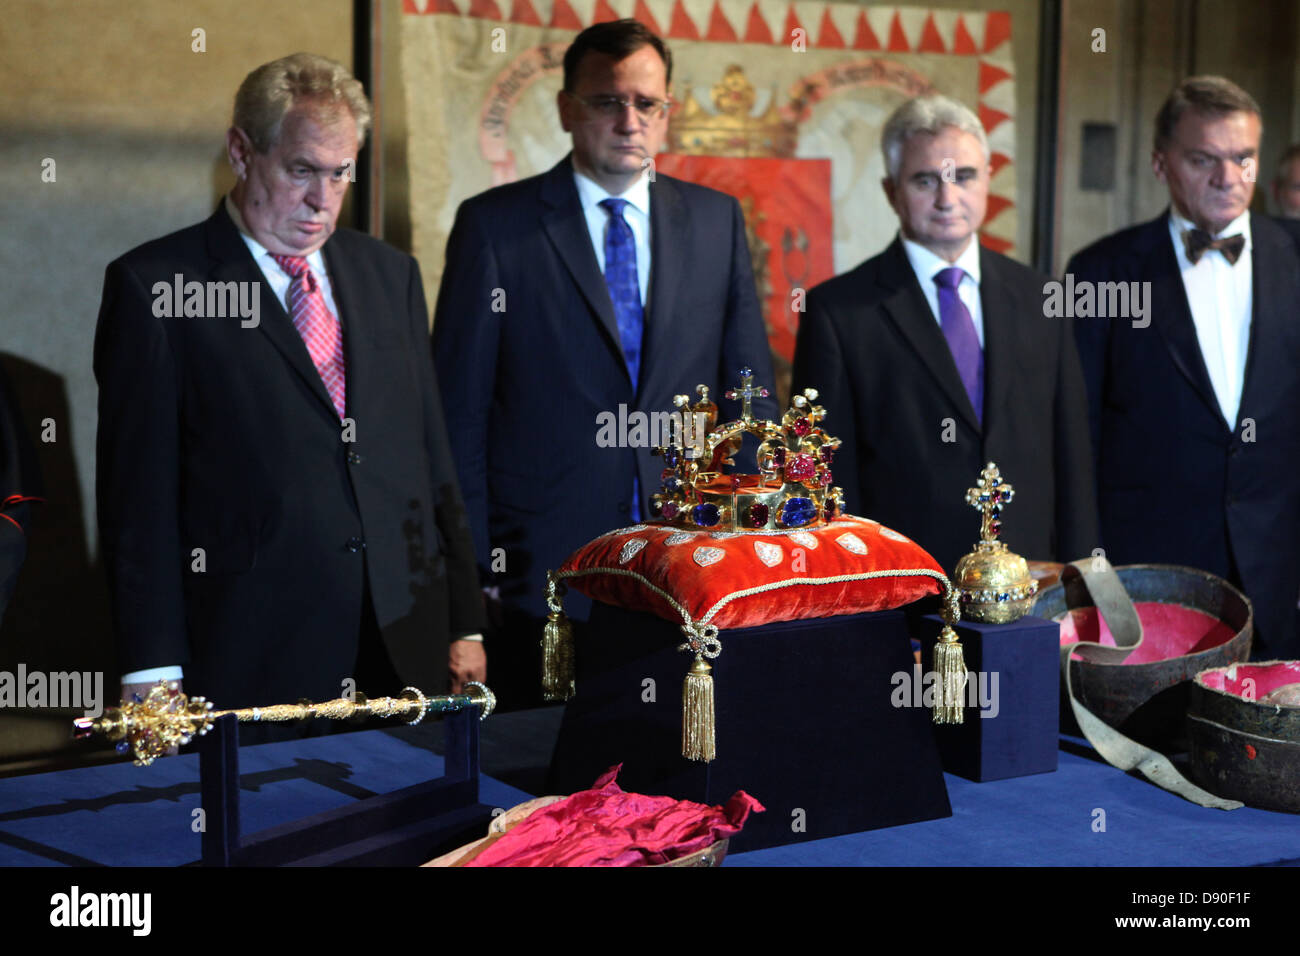 Czech president Milos Zeman (L) attend the display ceremony of the Czech Crown Jewels in the Prague Castle on May Stock Photo